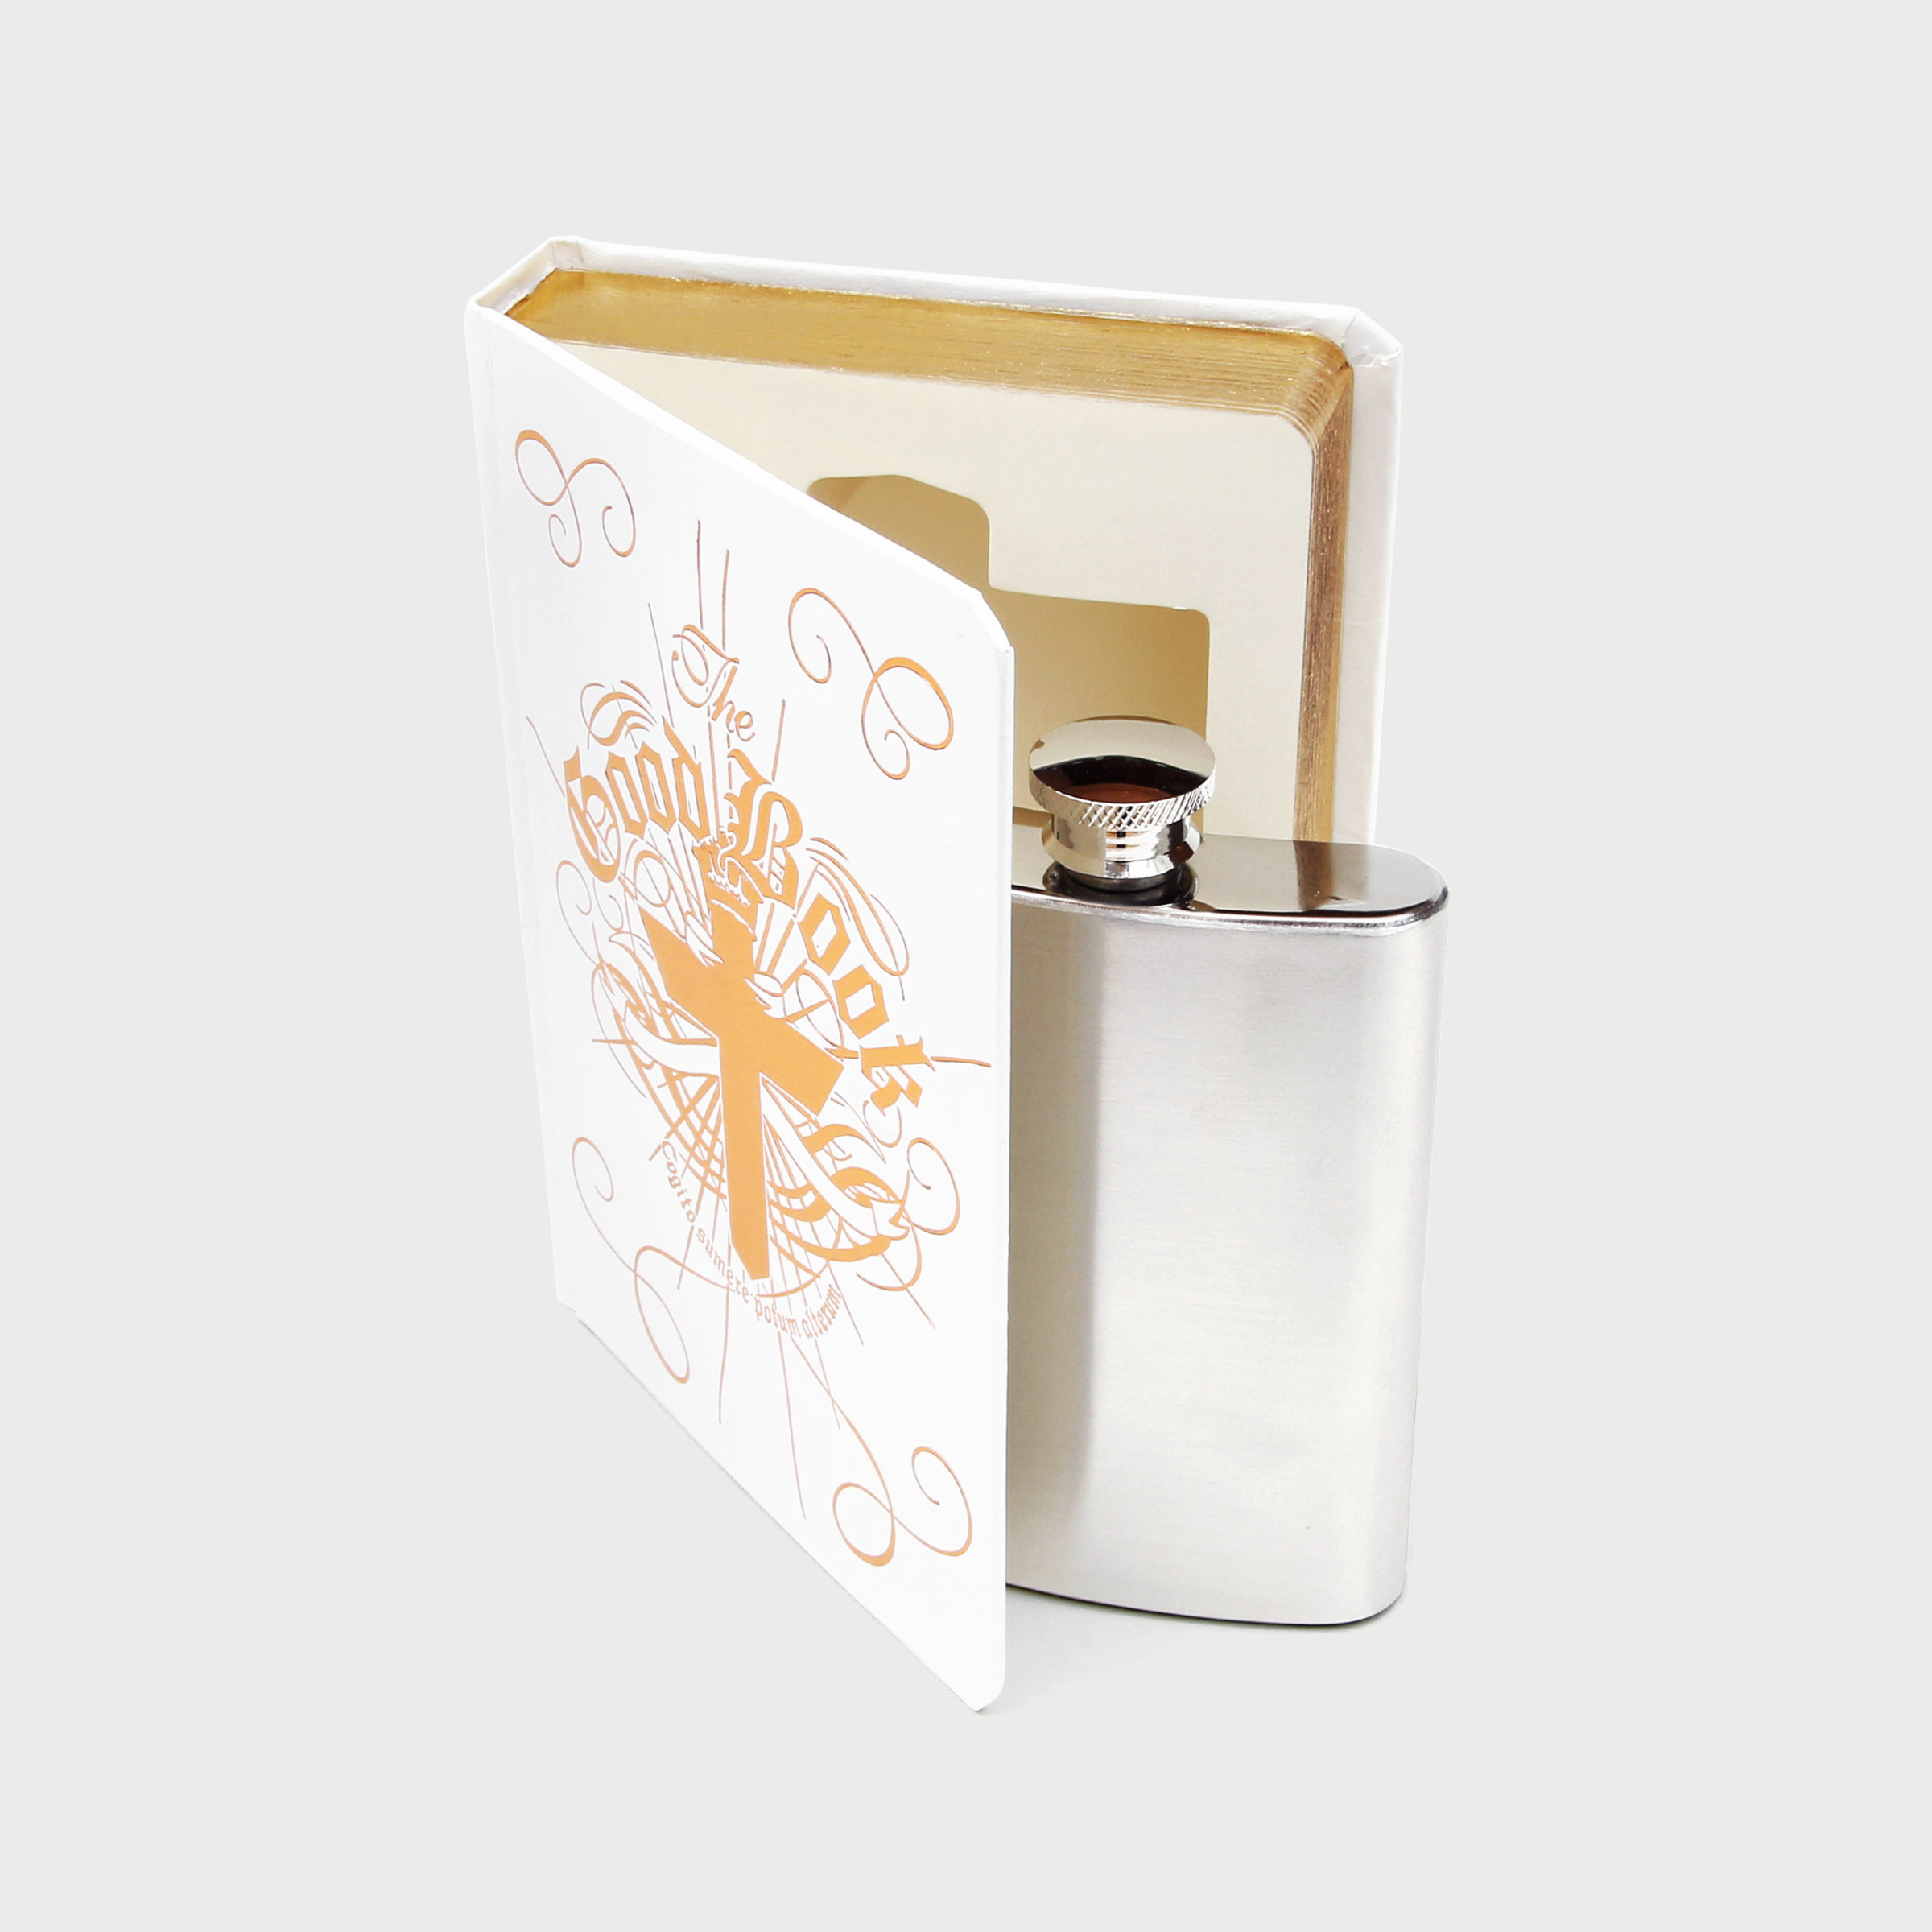 White and gold fancy flask in a book